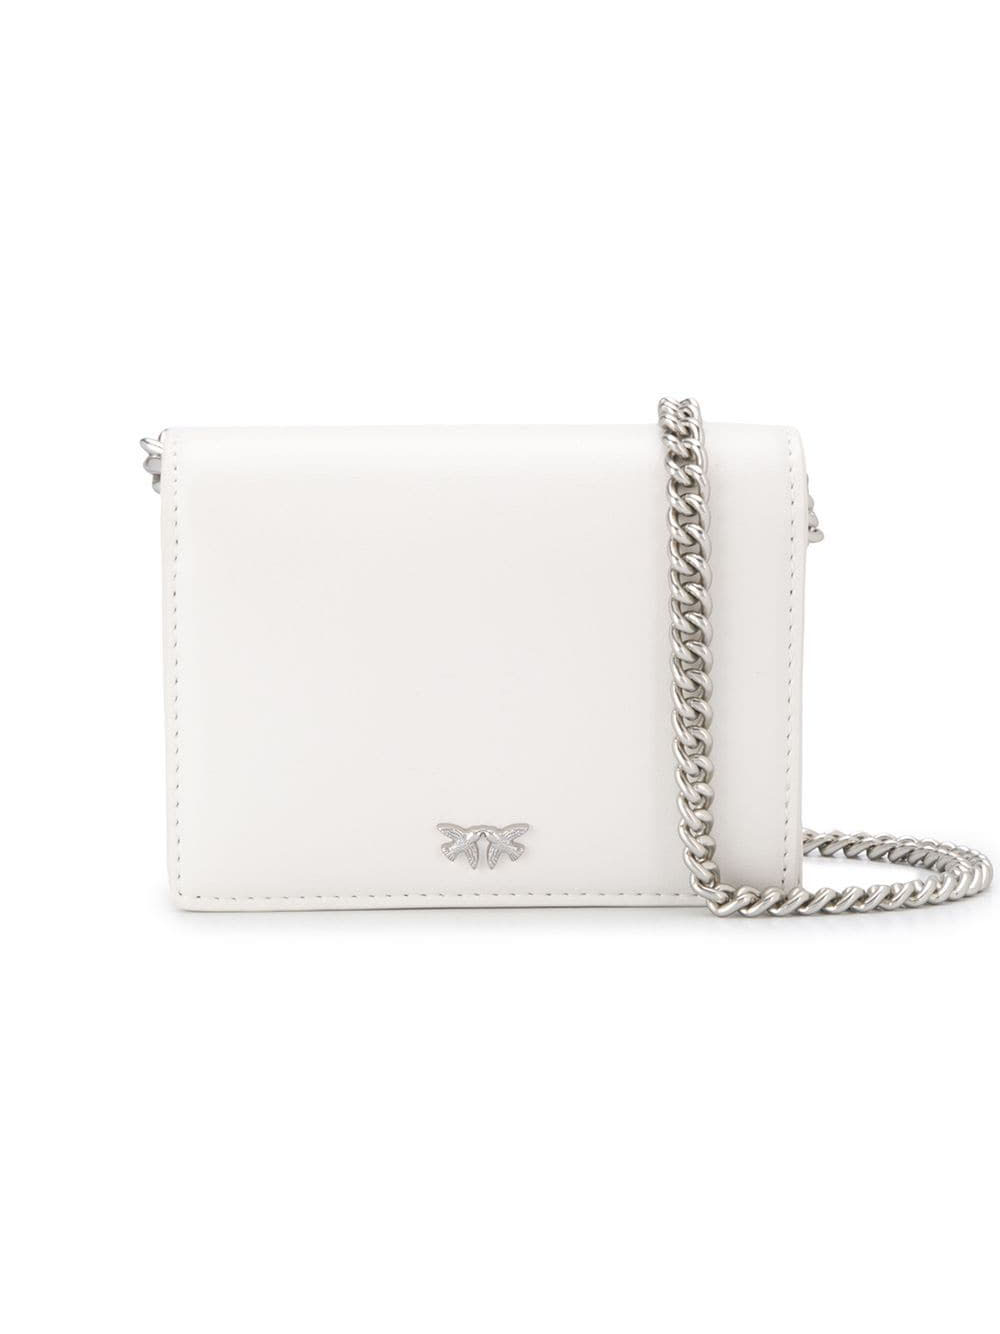 Picture of Pinko | Jolie Simply Credit Card